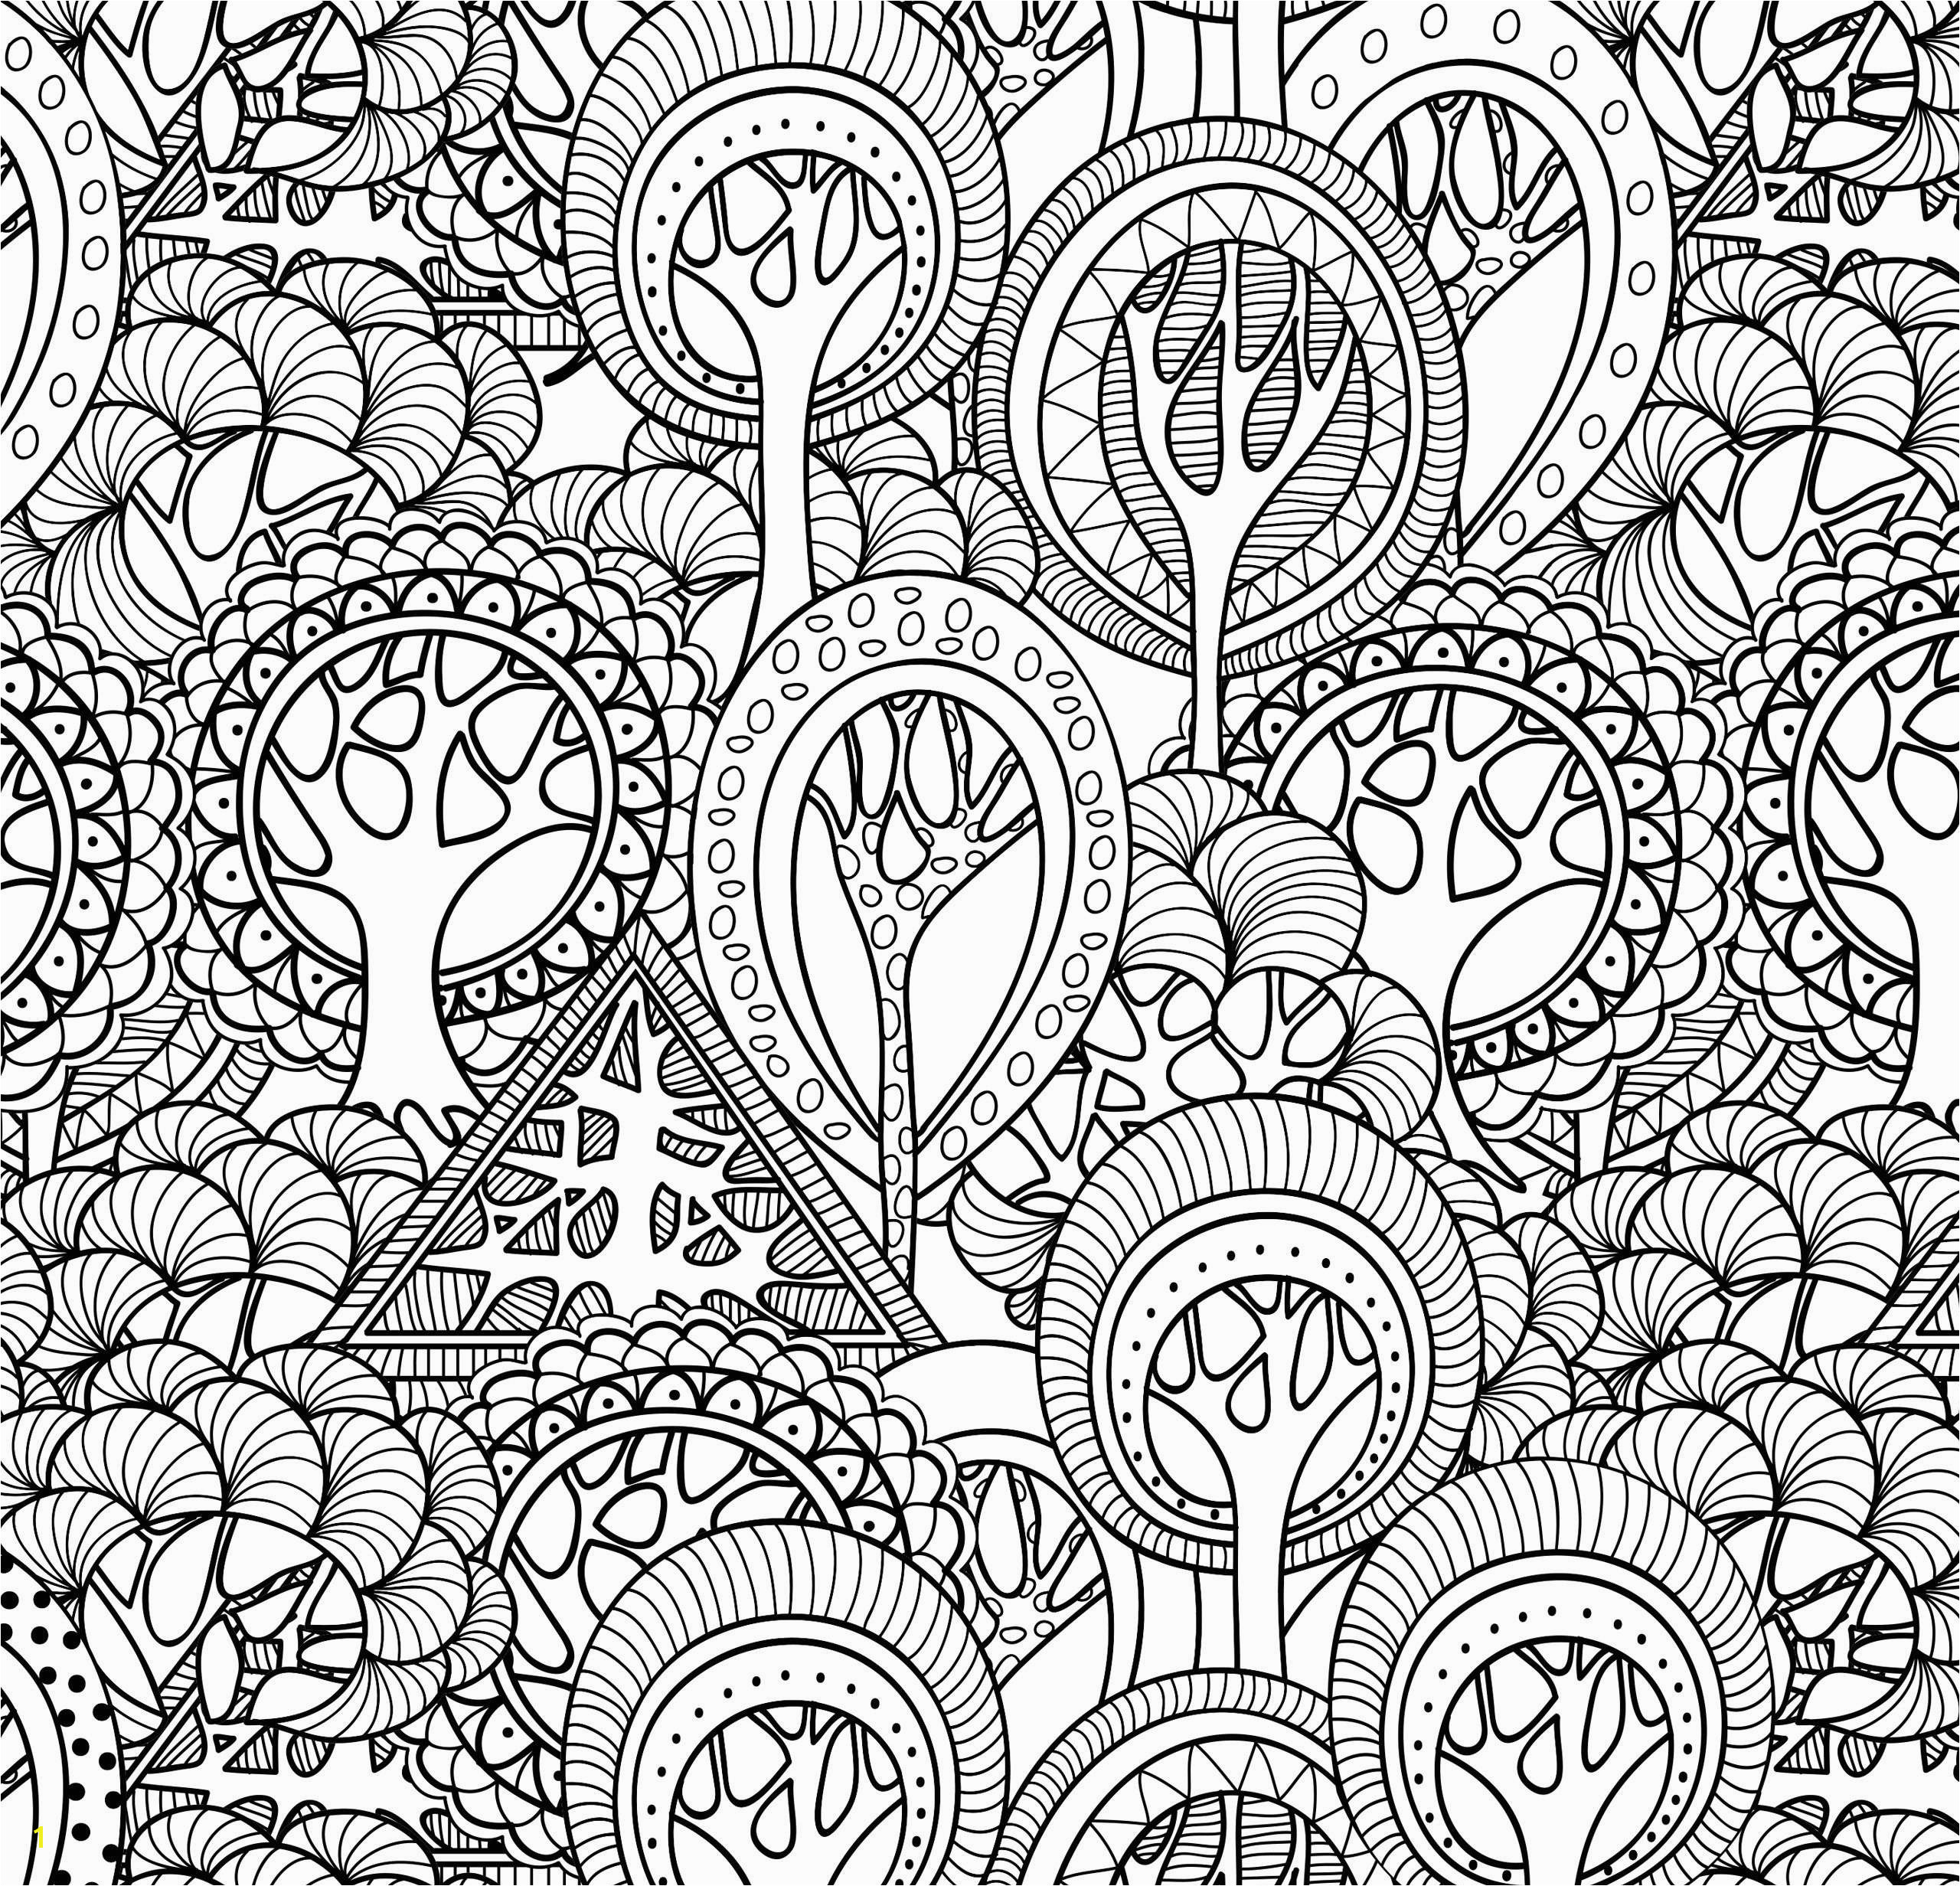 Intricate Coloring Pages Difficult Skull Coloring Pages New 20 Awesome Free Printable Halloween Coloring Pages